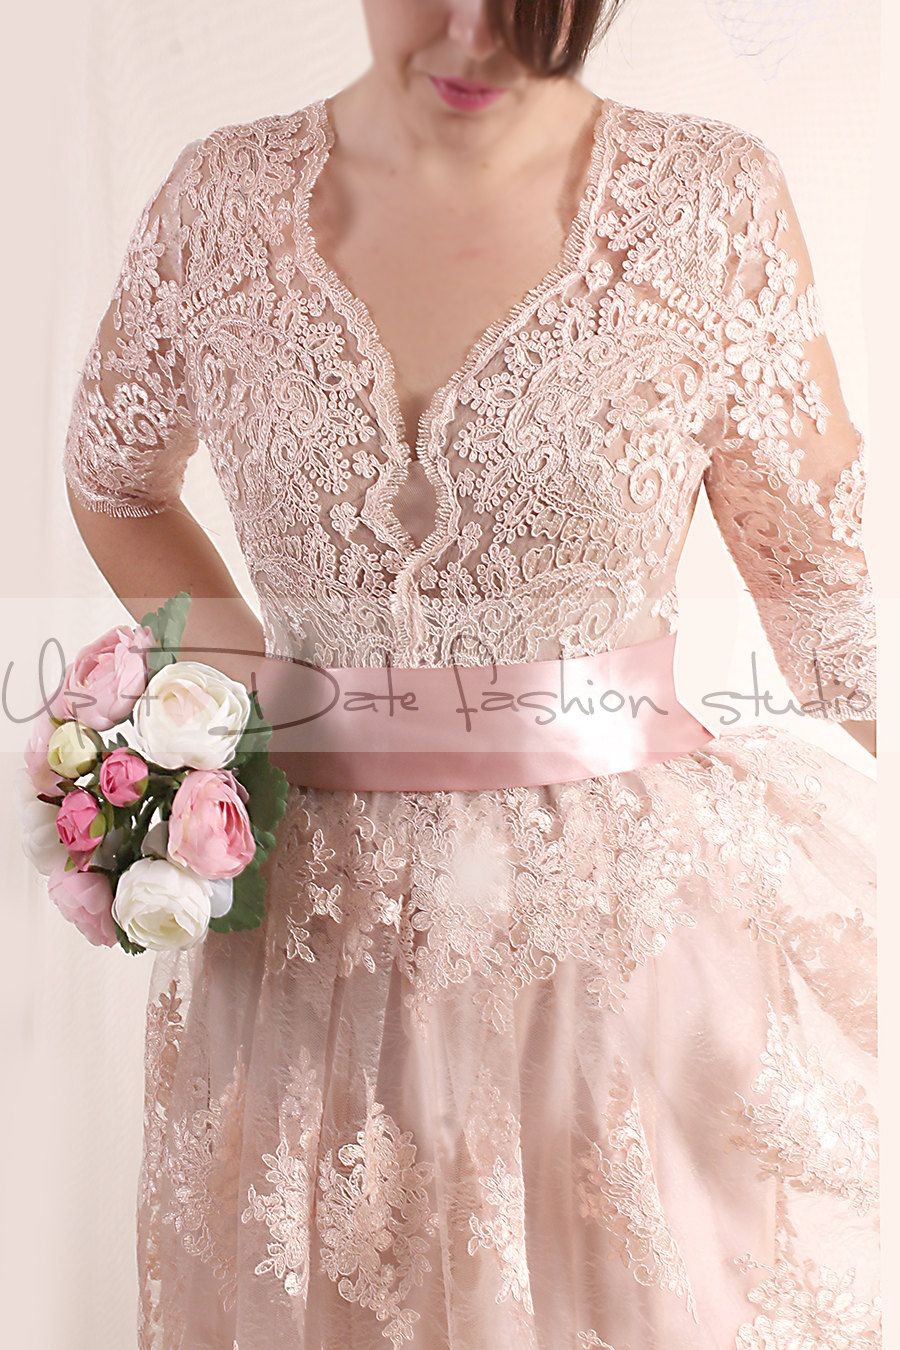 Lace Short Wedding Dress V Front With Sleeves Blush Pink Bridal Gown In 2021 Lace Dress With Sleeves Short Lace Dress Short Wedding Dress [ 1350 x 900 Pixel ]